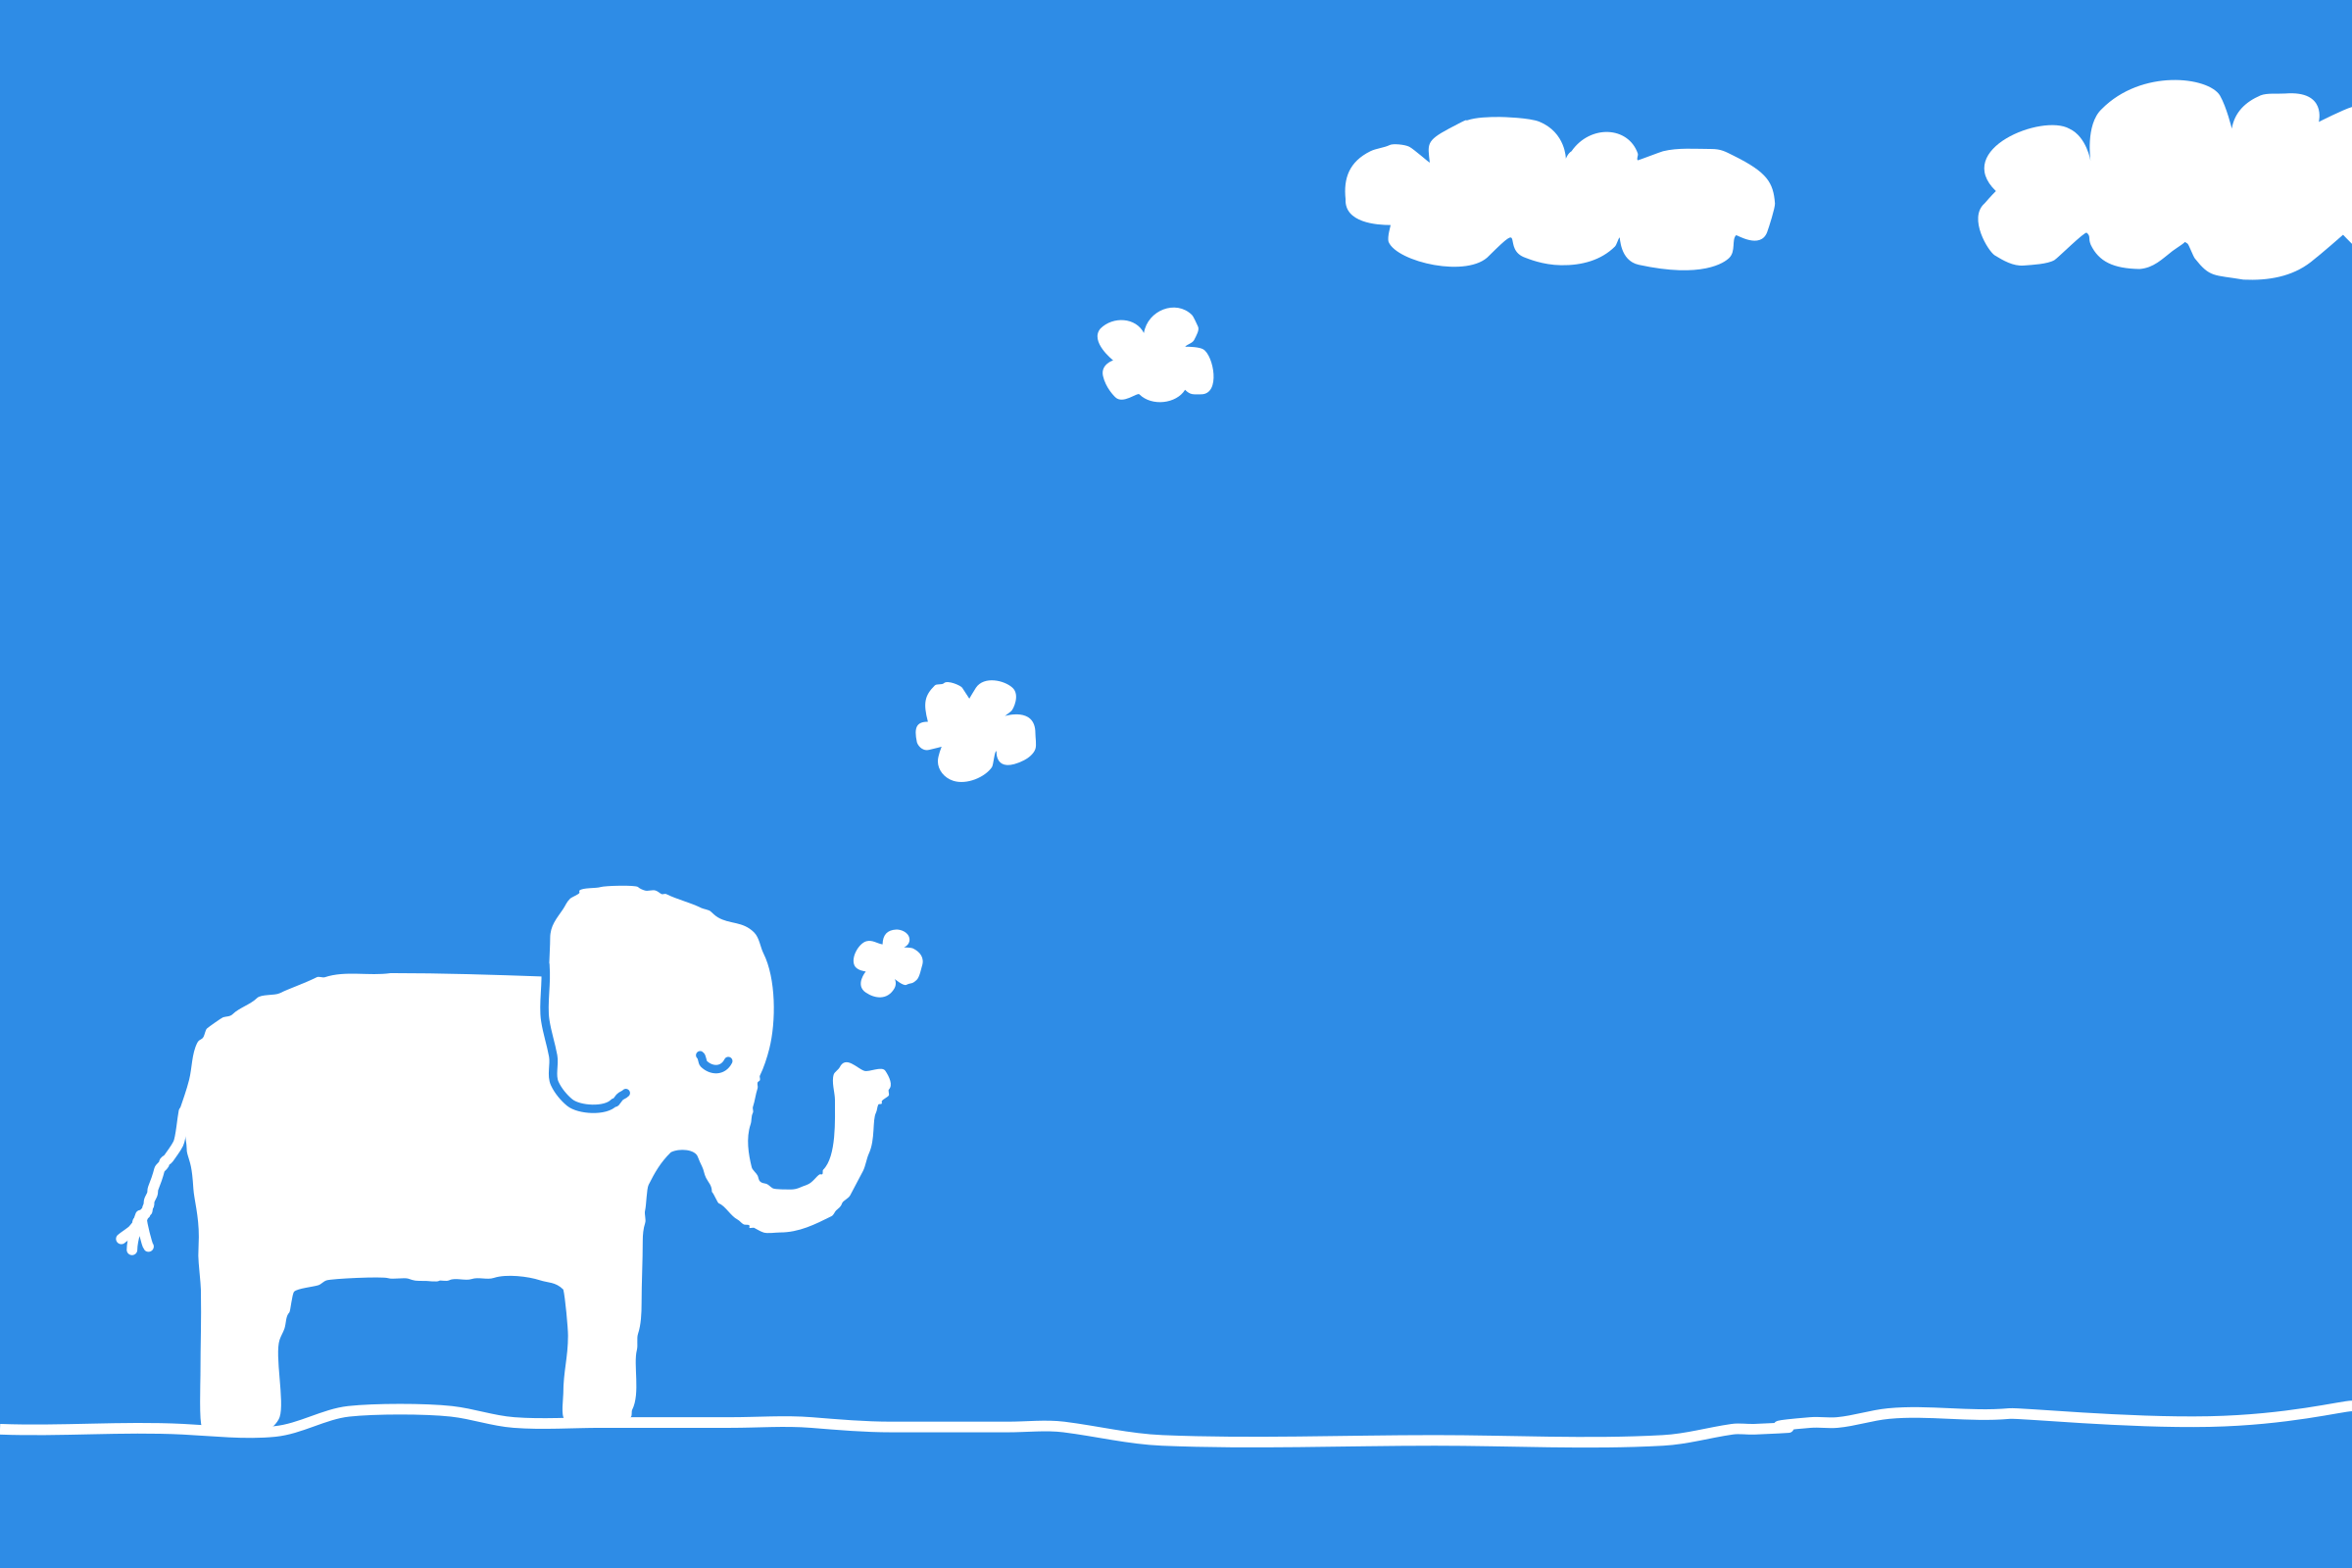 Elephant cloud by raphaelb